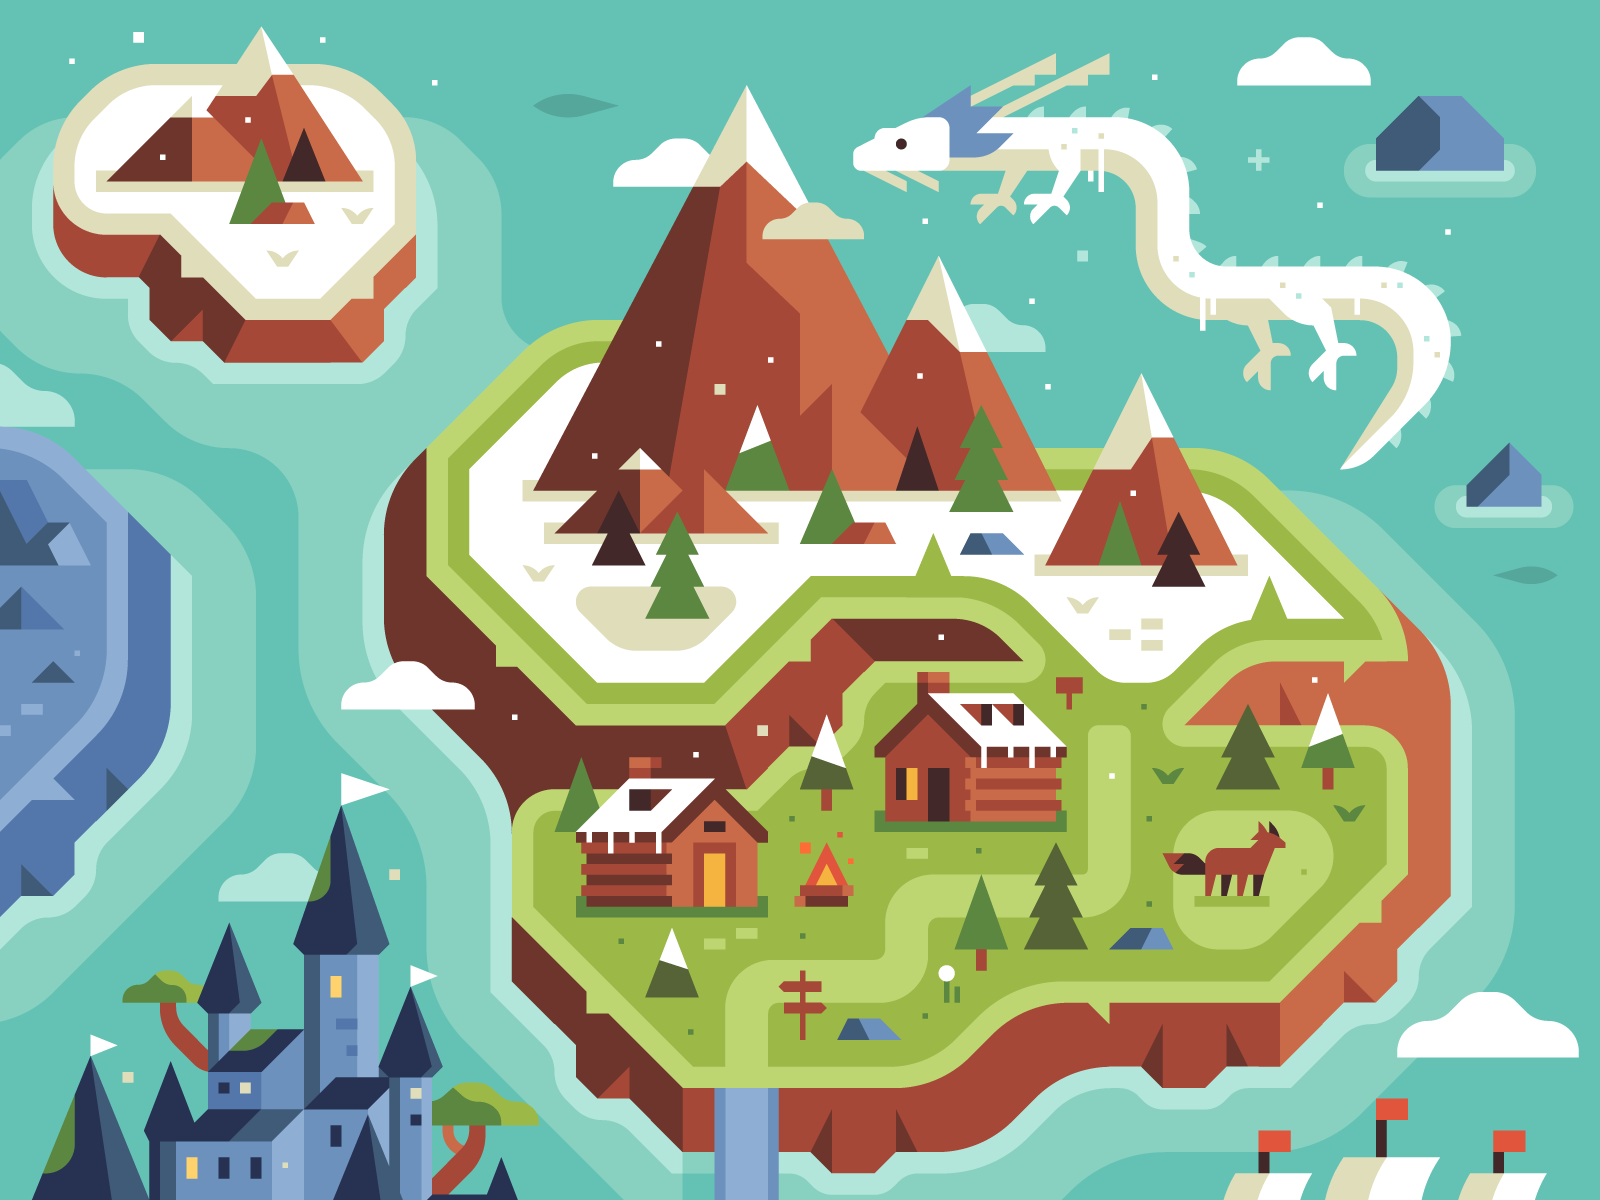 Two Dots Level Uplands Treasure Hunt map by Alex Pasquarella and Canopy Design and Illustration